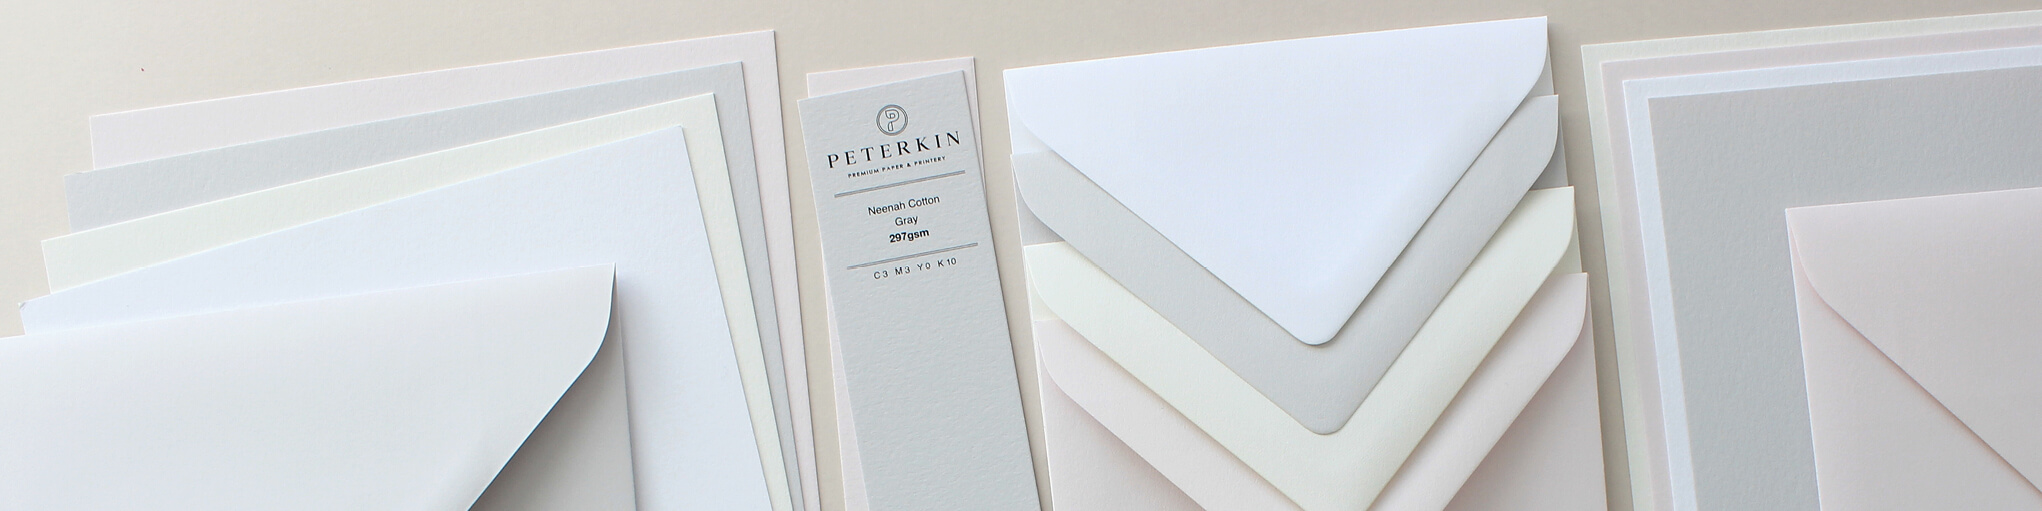 Neenah Cotton paper and card